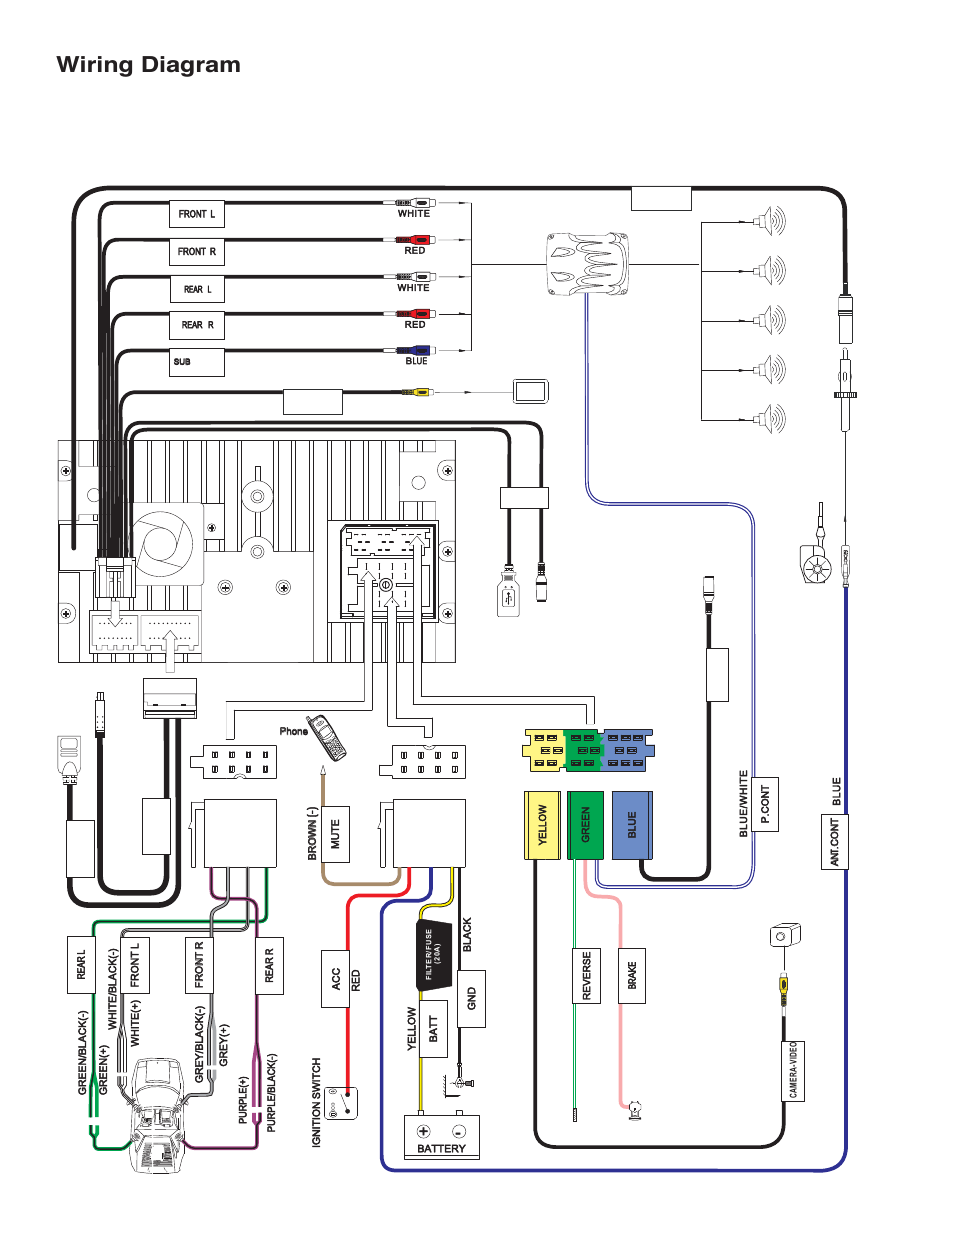 Viper 5002 Alarm Wiring Diagram 31 Images Alarms 791xv Car Remote Controlviper 350hv Source 5900